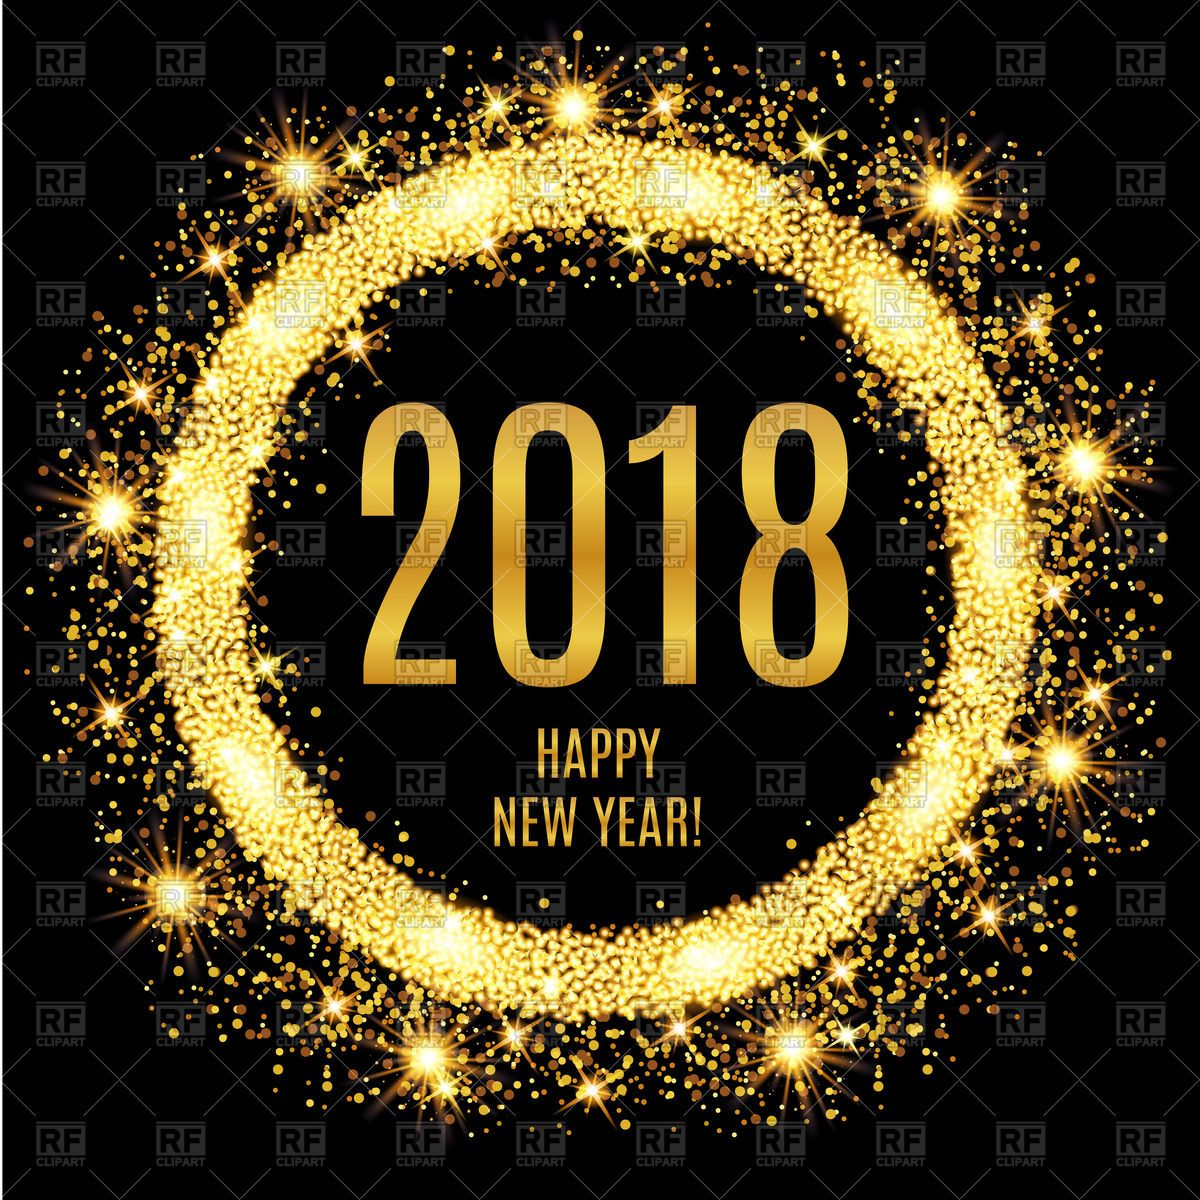 2018 Happy New Year Glowing Gold Background Royalty Free Vector Clip Art  Image U2013 RFclipart